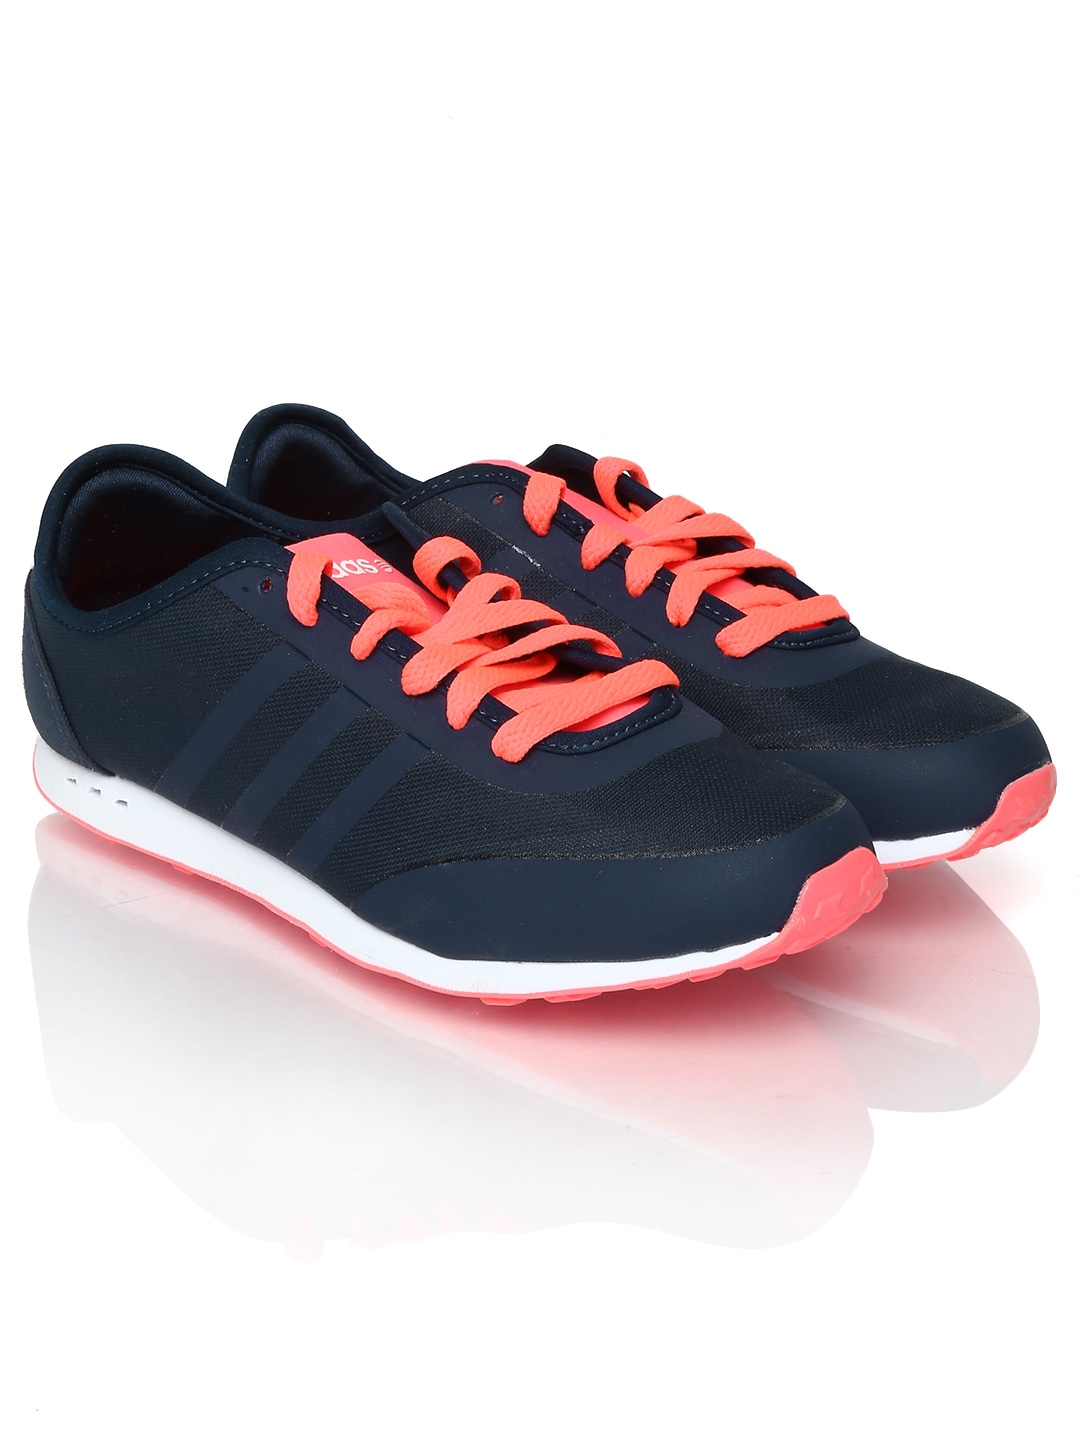 68cc4a3ec93 cheapest yellow pink womens adidas neo shoes 756b8 0dd81